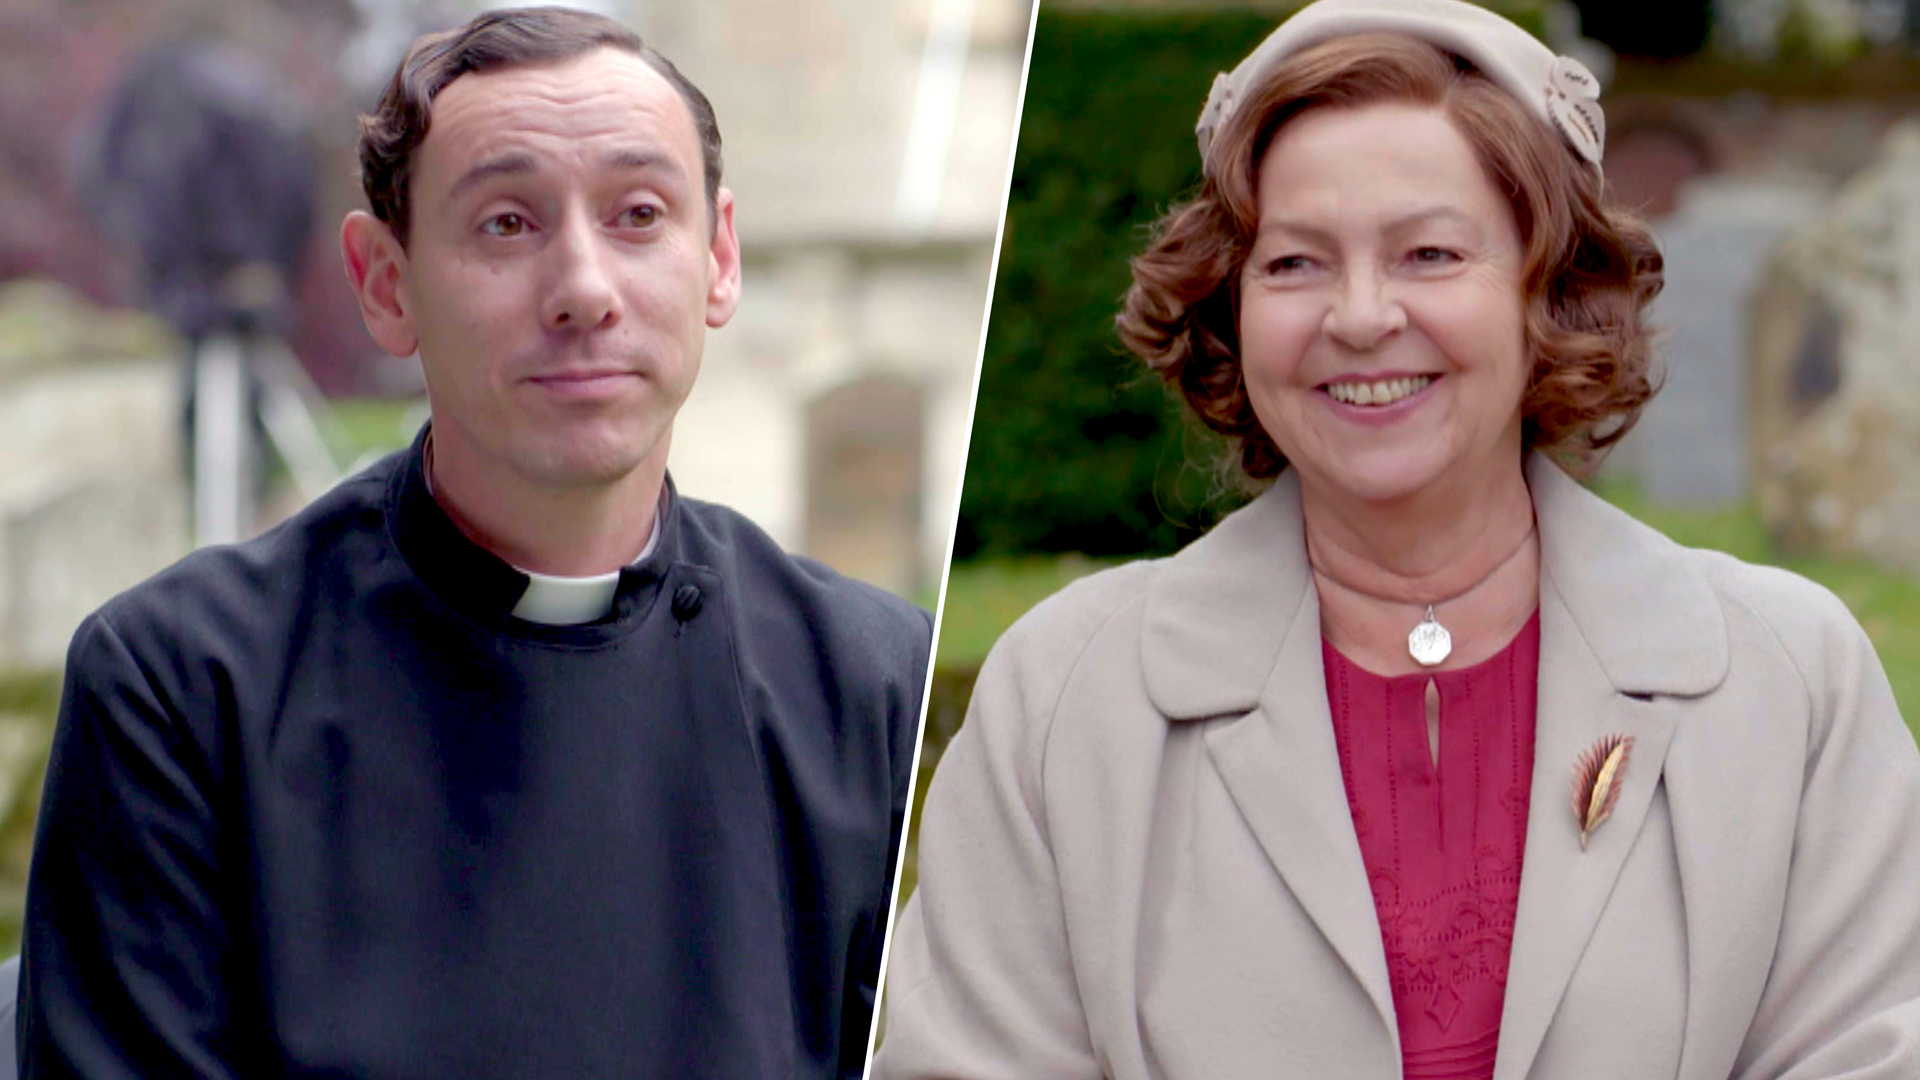 Grantchester Season 5 Al Weaver and Tessa Peake-Jones in Do You Know Your Co-Star?